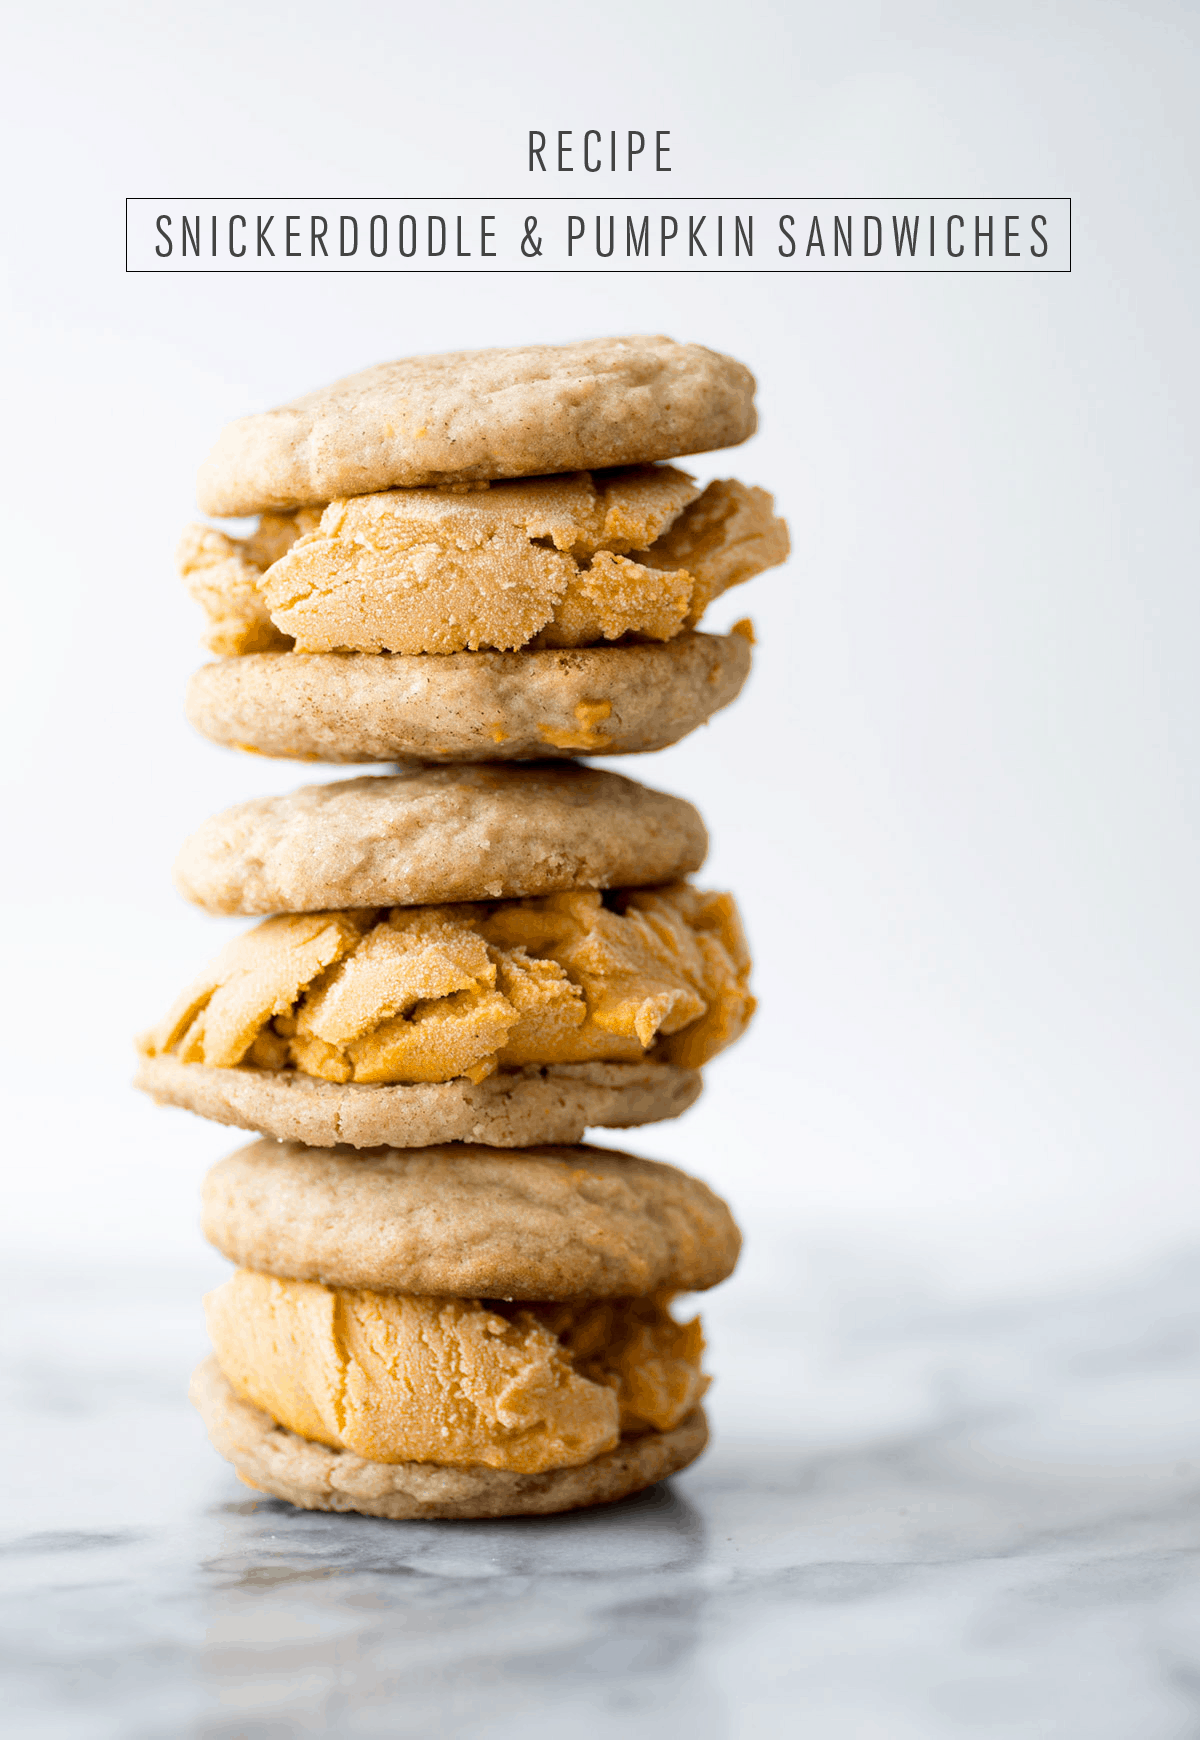 Snickerdoodle and Pumpkin Ice Cream Sandwich - Sugar & Cloth - Houston Blogger - Recipe